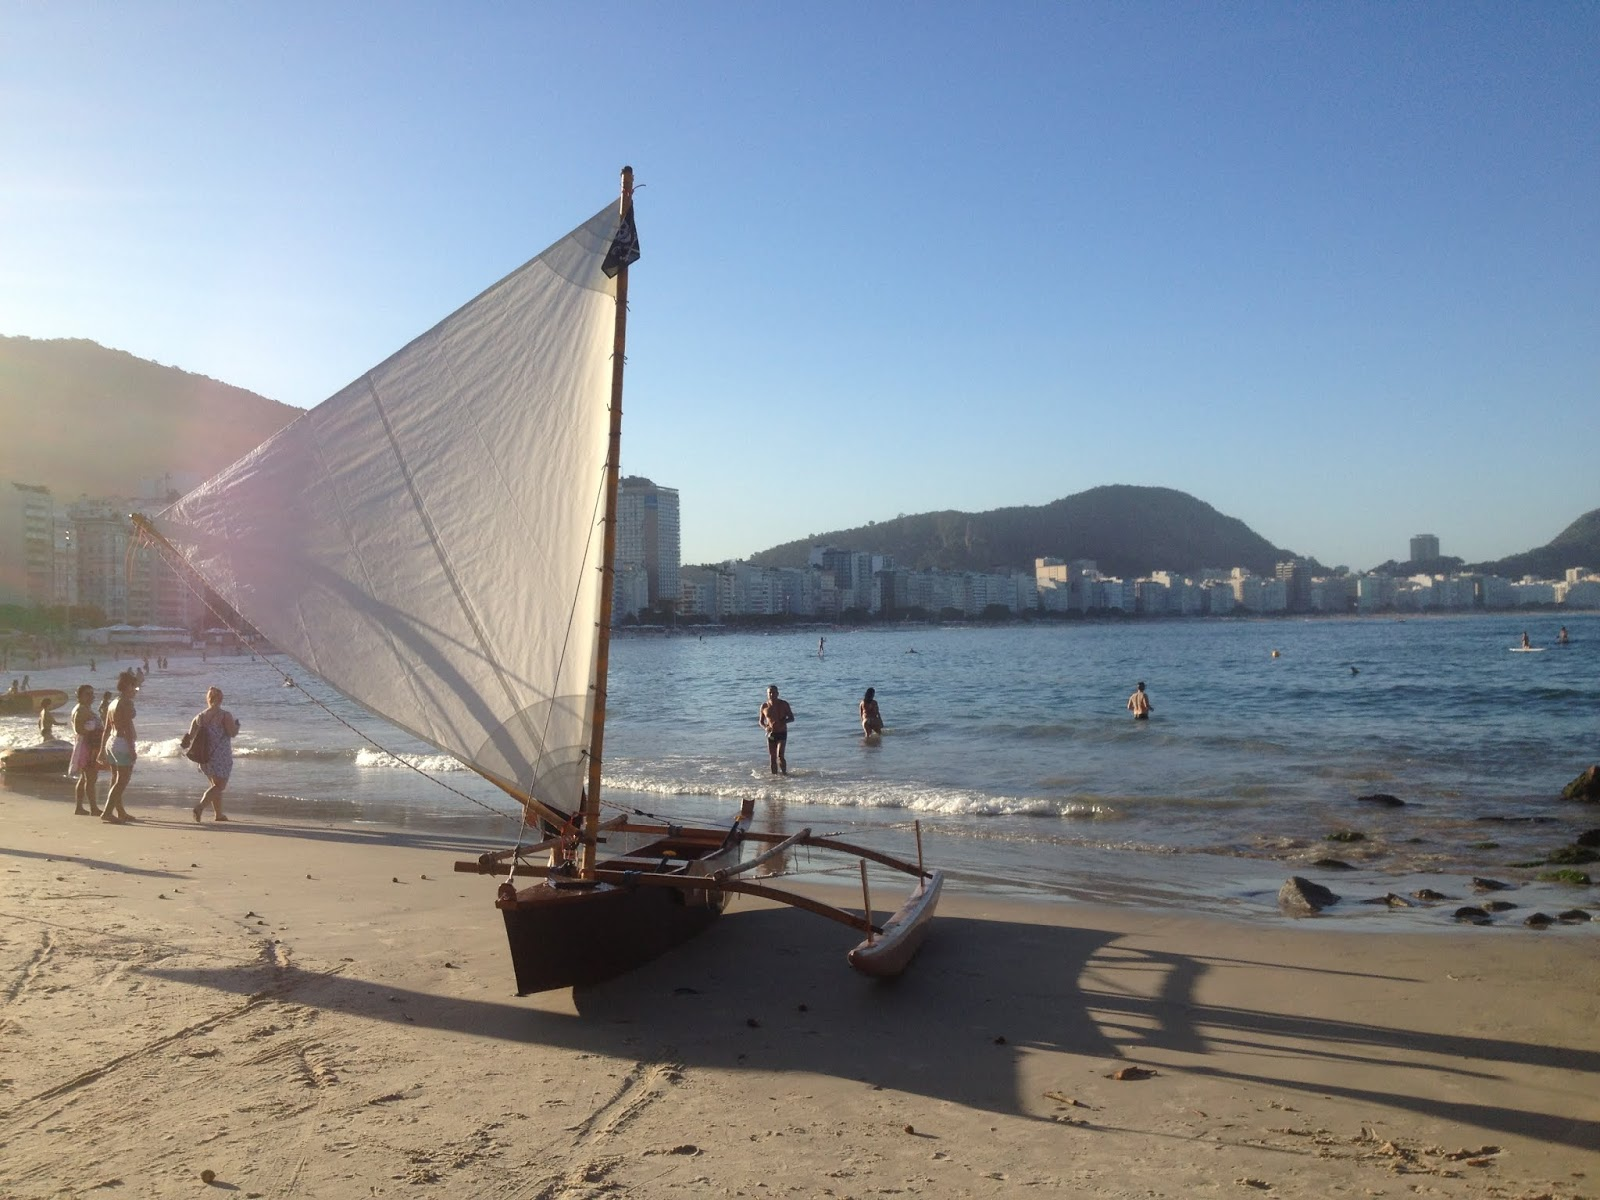 How To Rig Outriggers Diagram Sequence For Hostel Management System Wa 39apa Outrigger Sailing Canoe